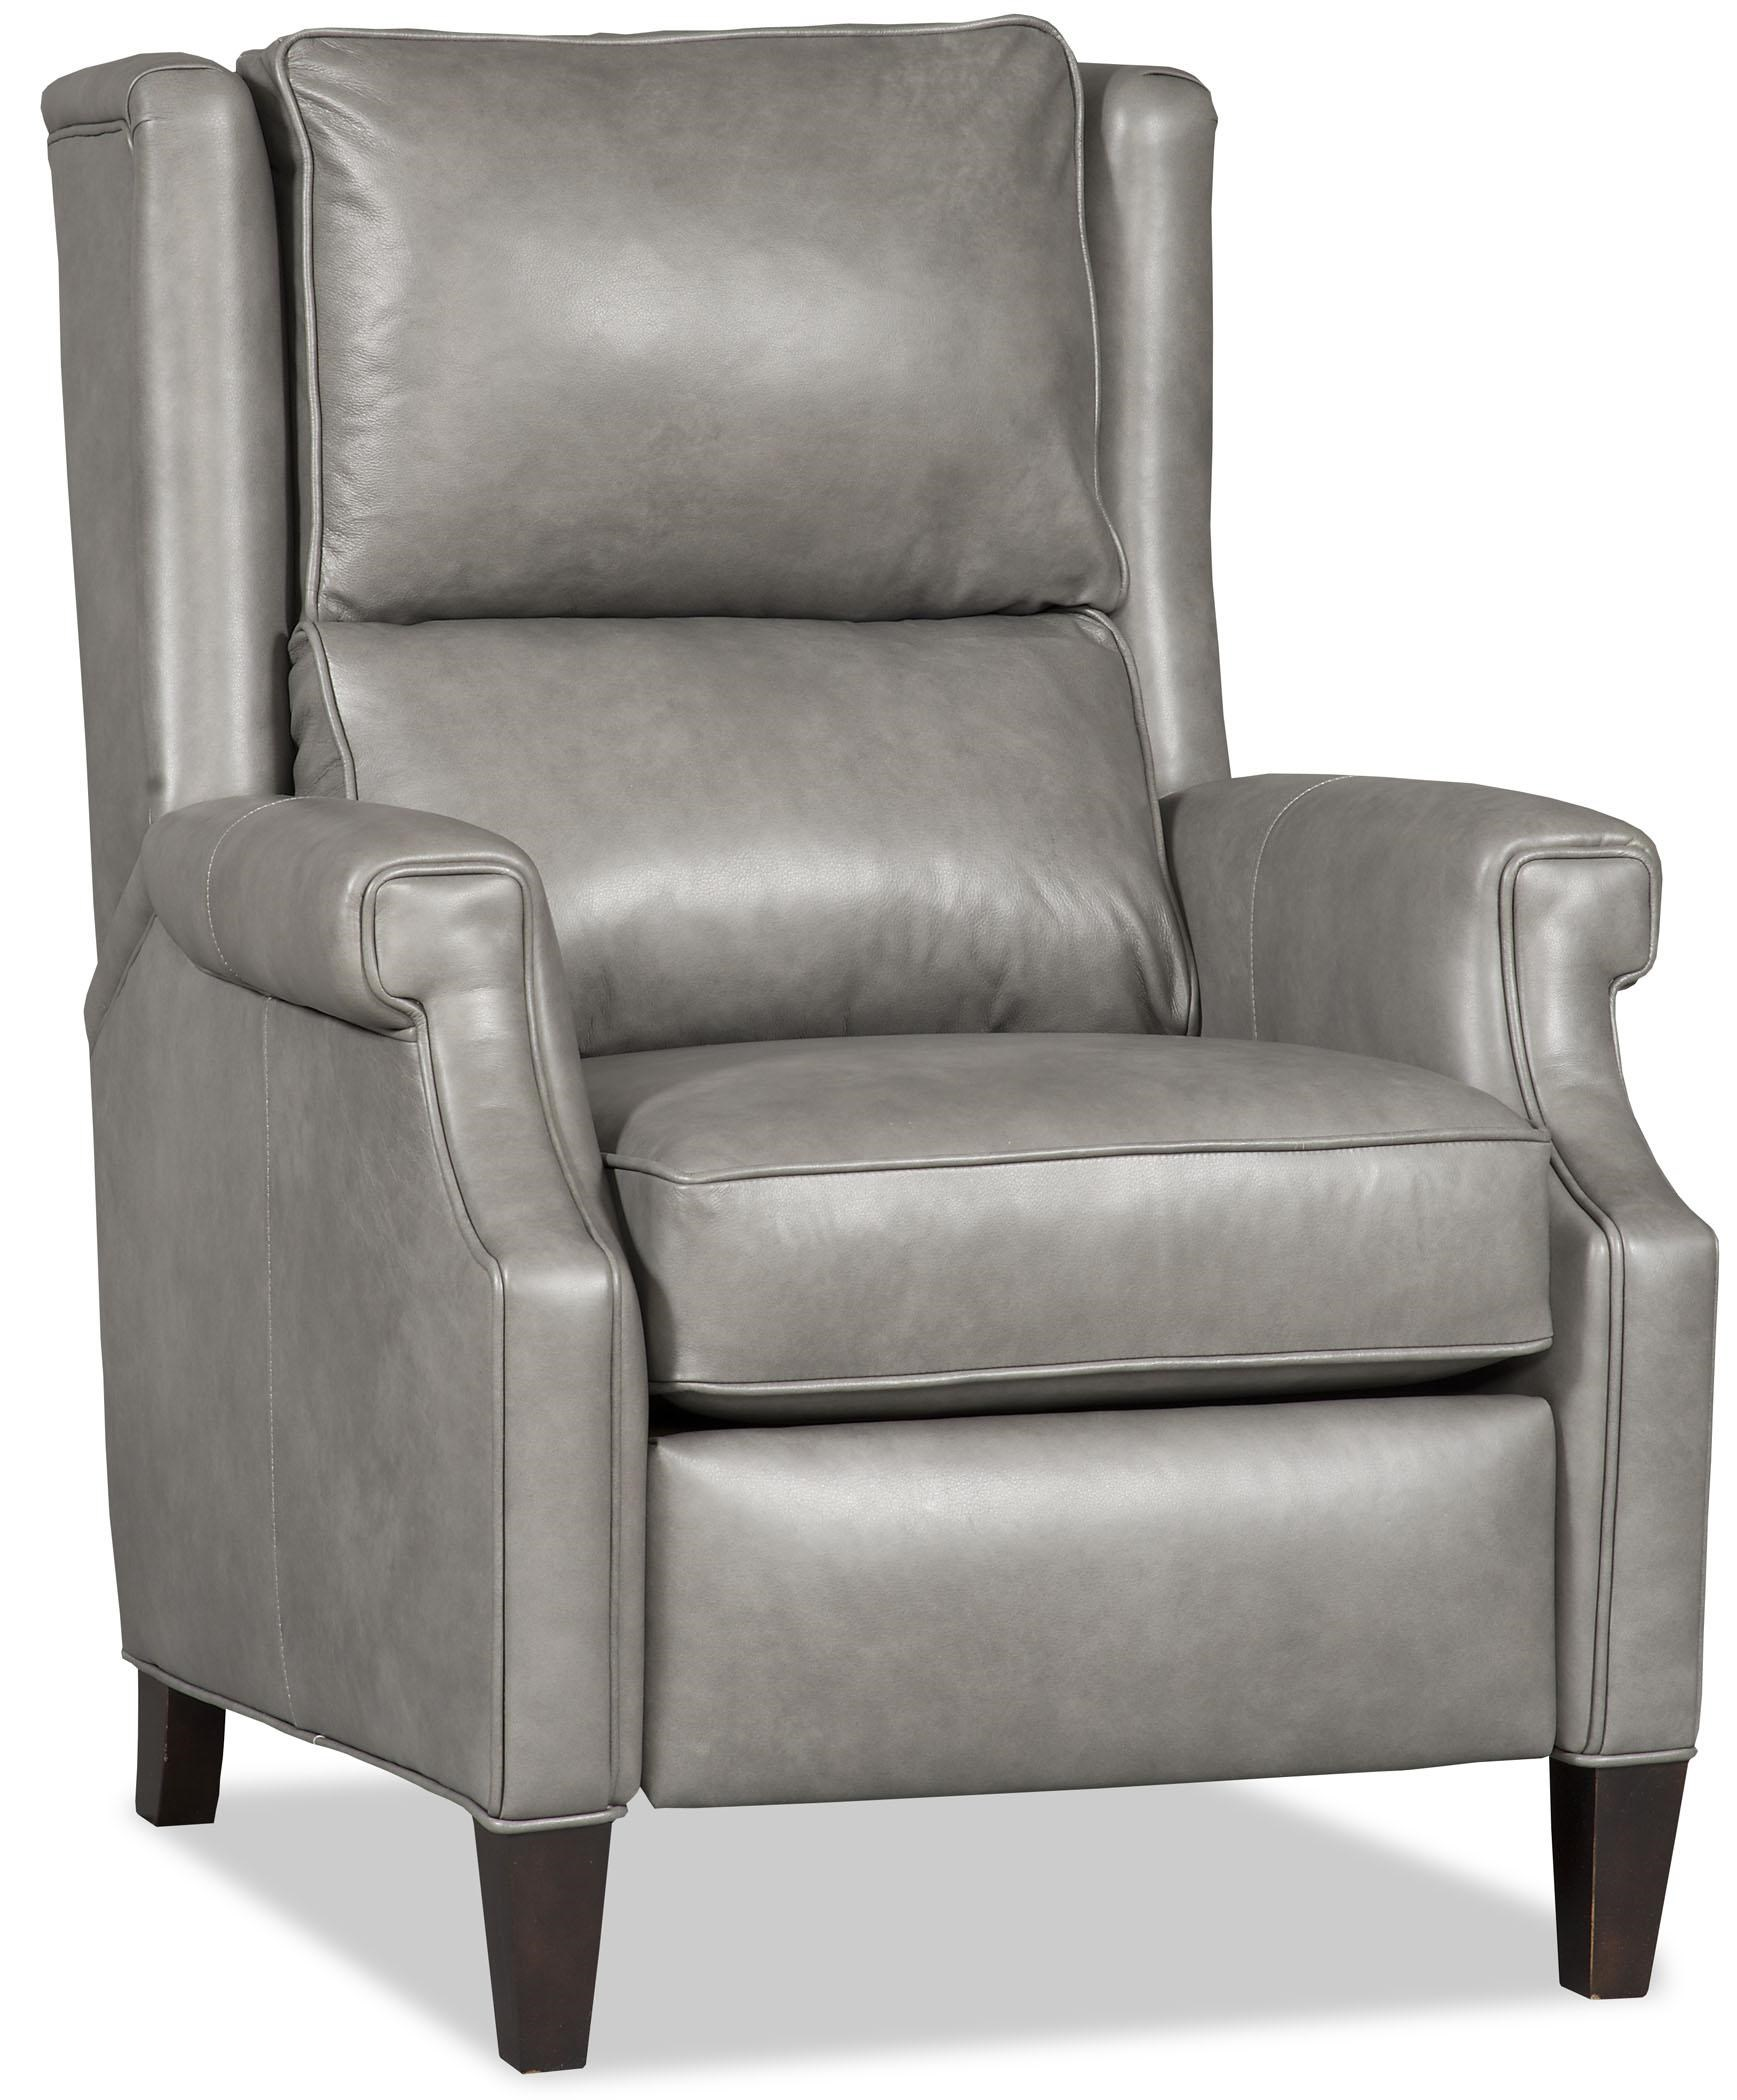 Bradington Young Chairs That Recline Gallaway High